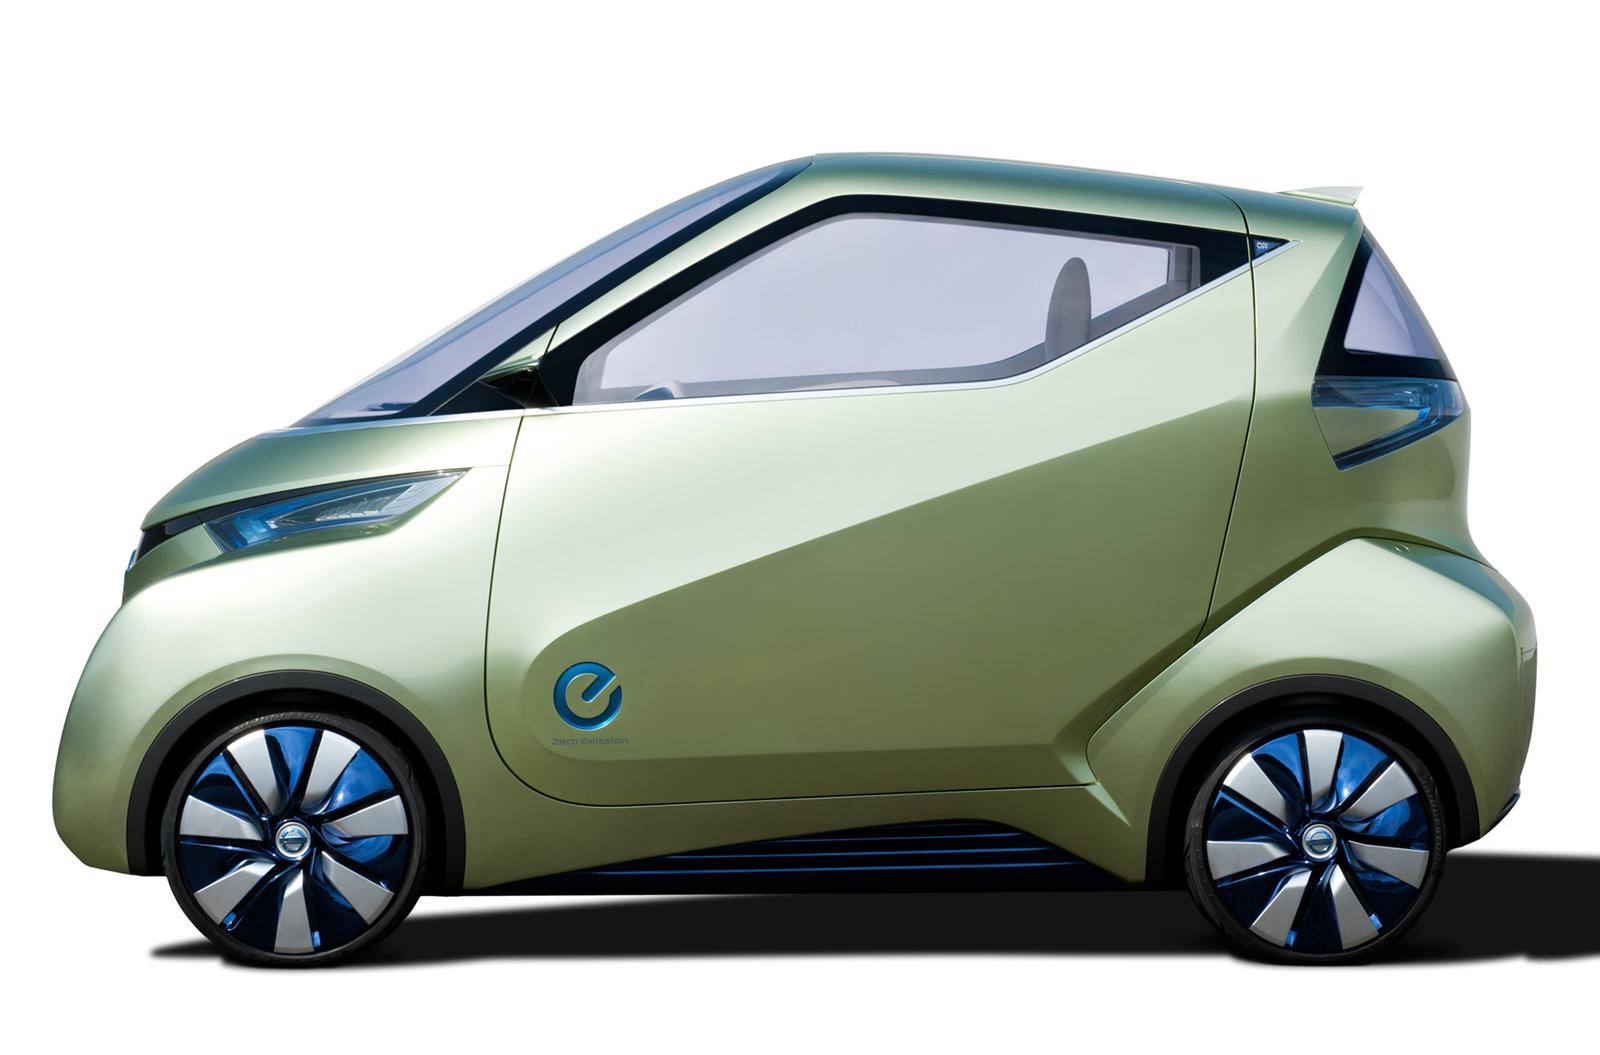 2012 Nissan Pivo 3 EV Concept 2 2012 Nissan Pivo 3 EV Concept  A Review